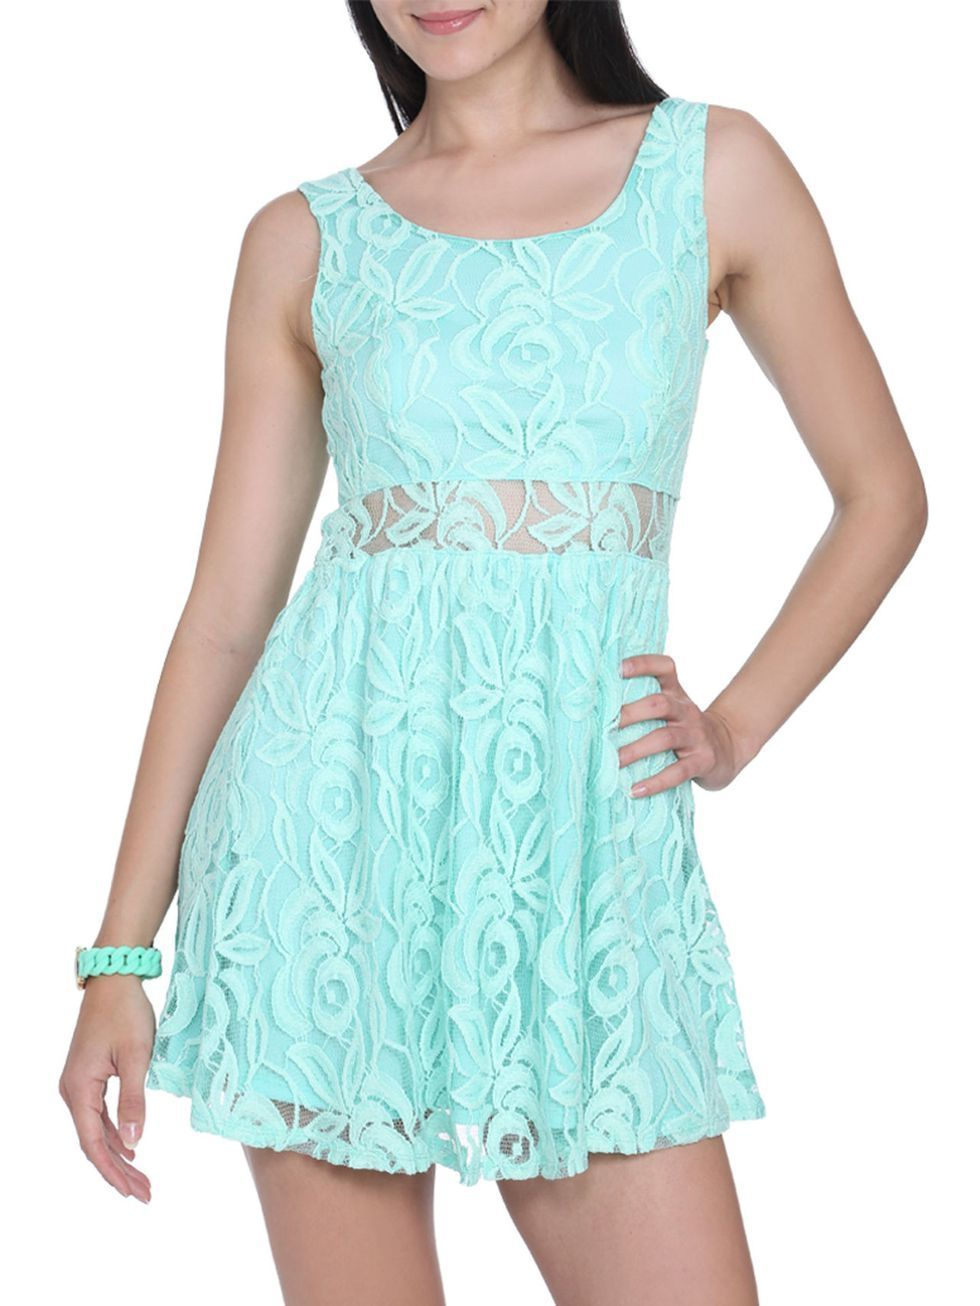 72f0c86e6c13 Hot Summer Dresses Under 50 - Inexpensive Summer Dresses